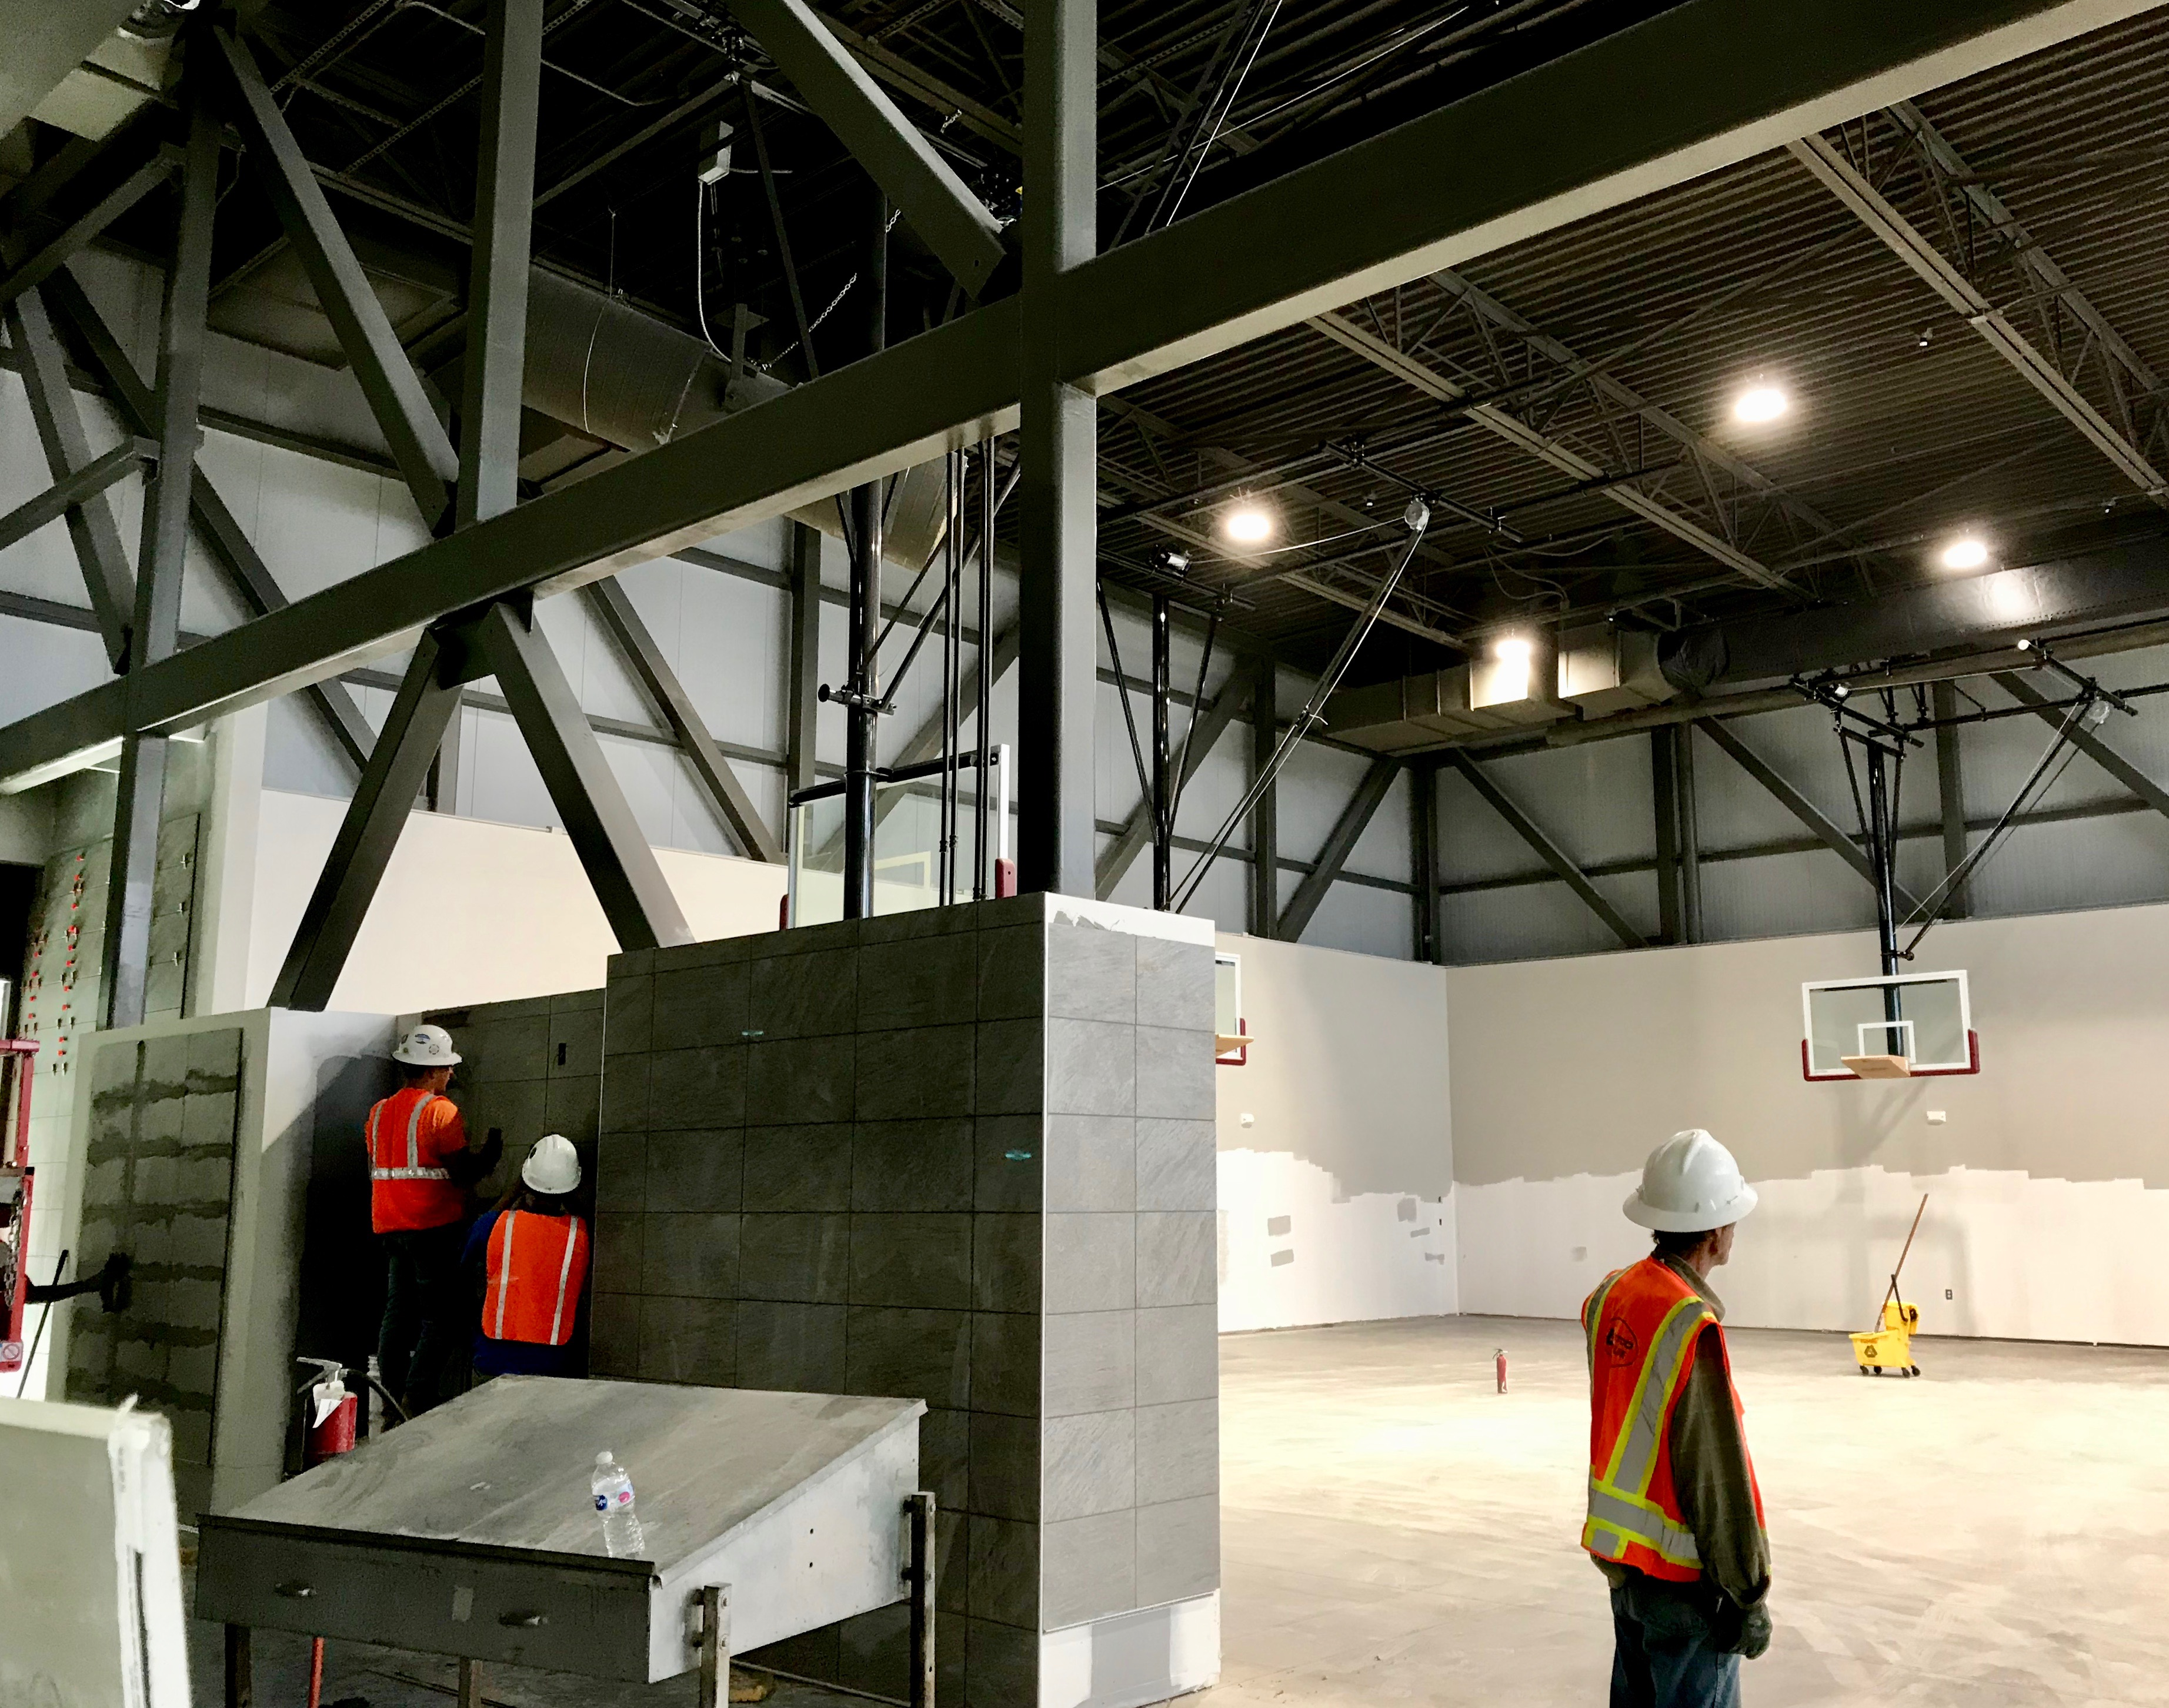 Practice gym construction